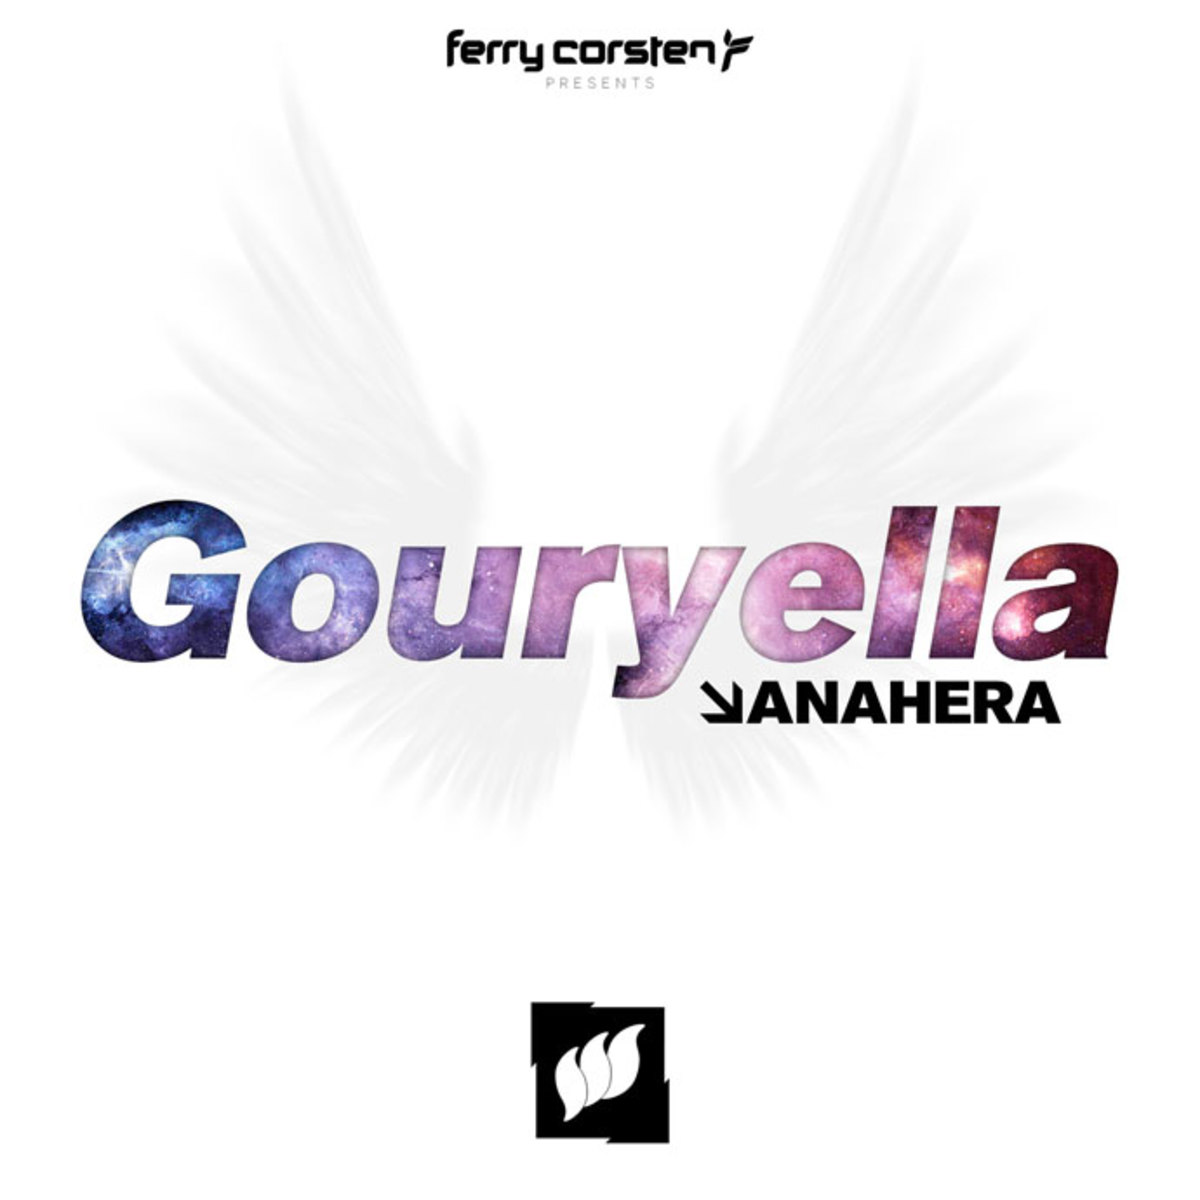 Video Premiere - Gouryella (Ferry Corsten) Presents Anahera